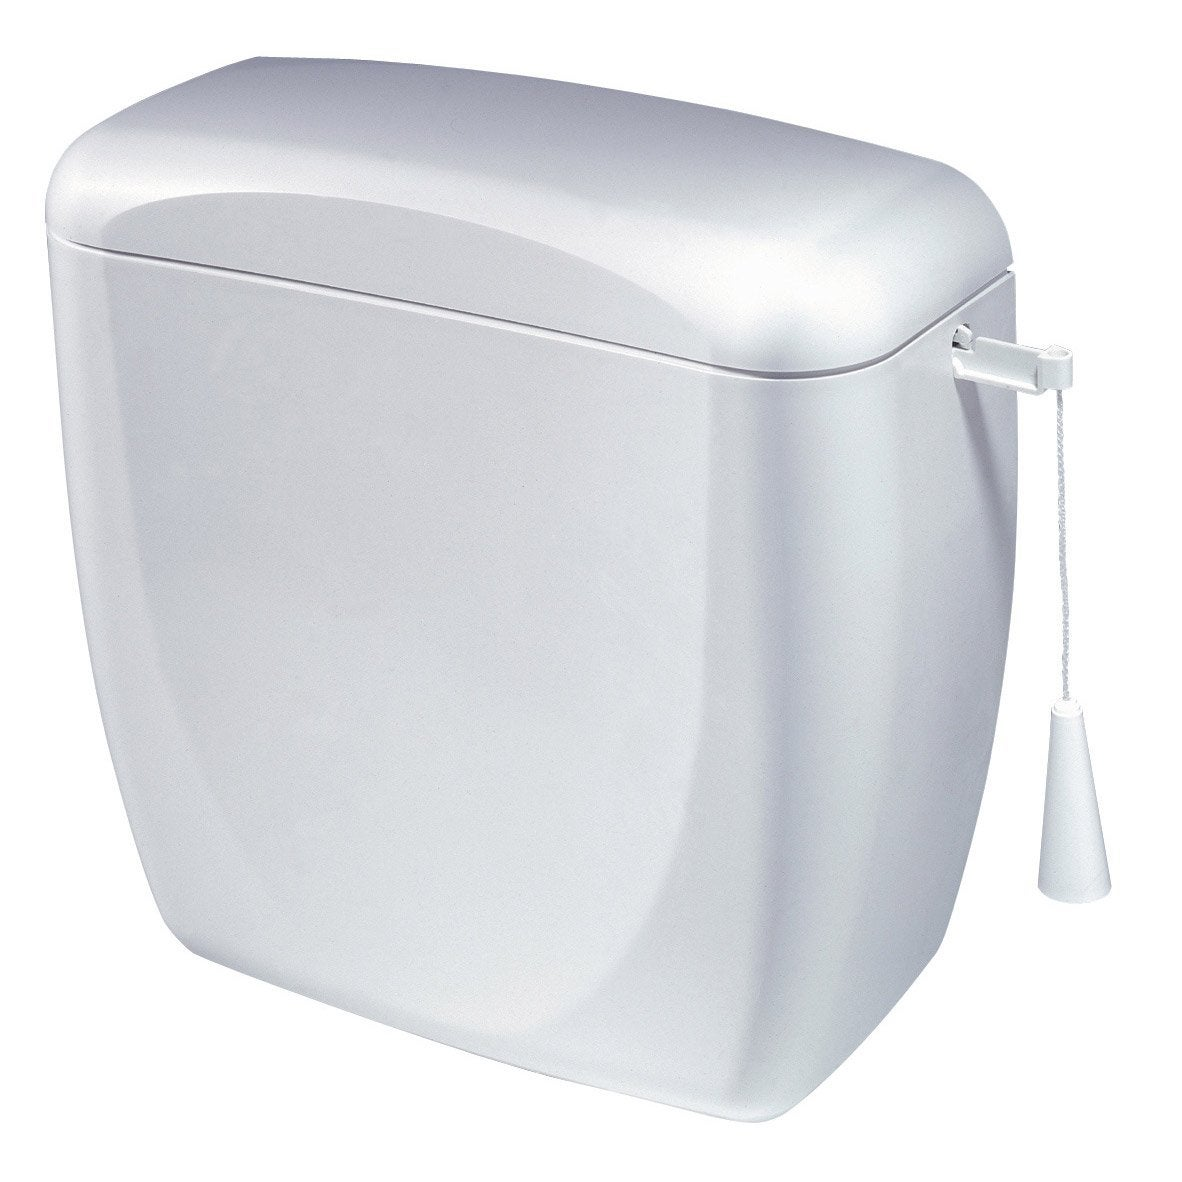 R servoir wc haut primo leroy merlin for Arrivee d eau wc suspendu